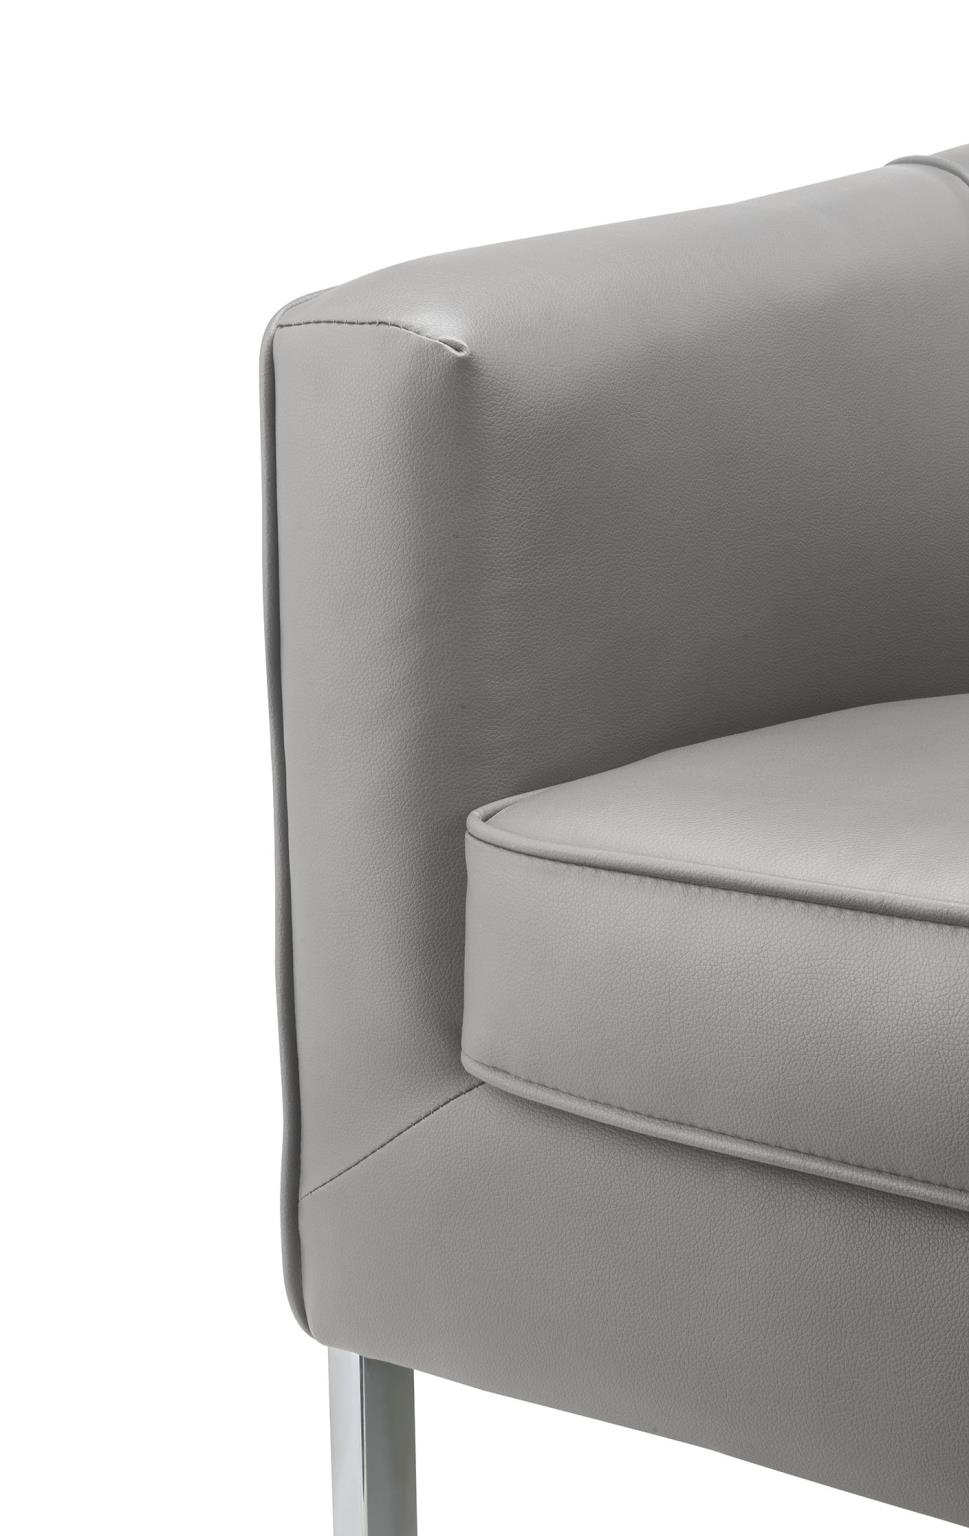 Accent Chair Arm and Seat Cushion Details